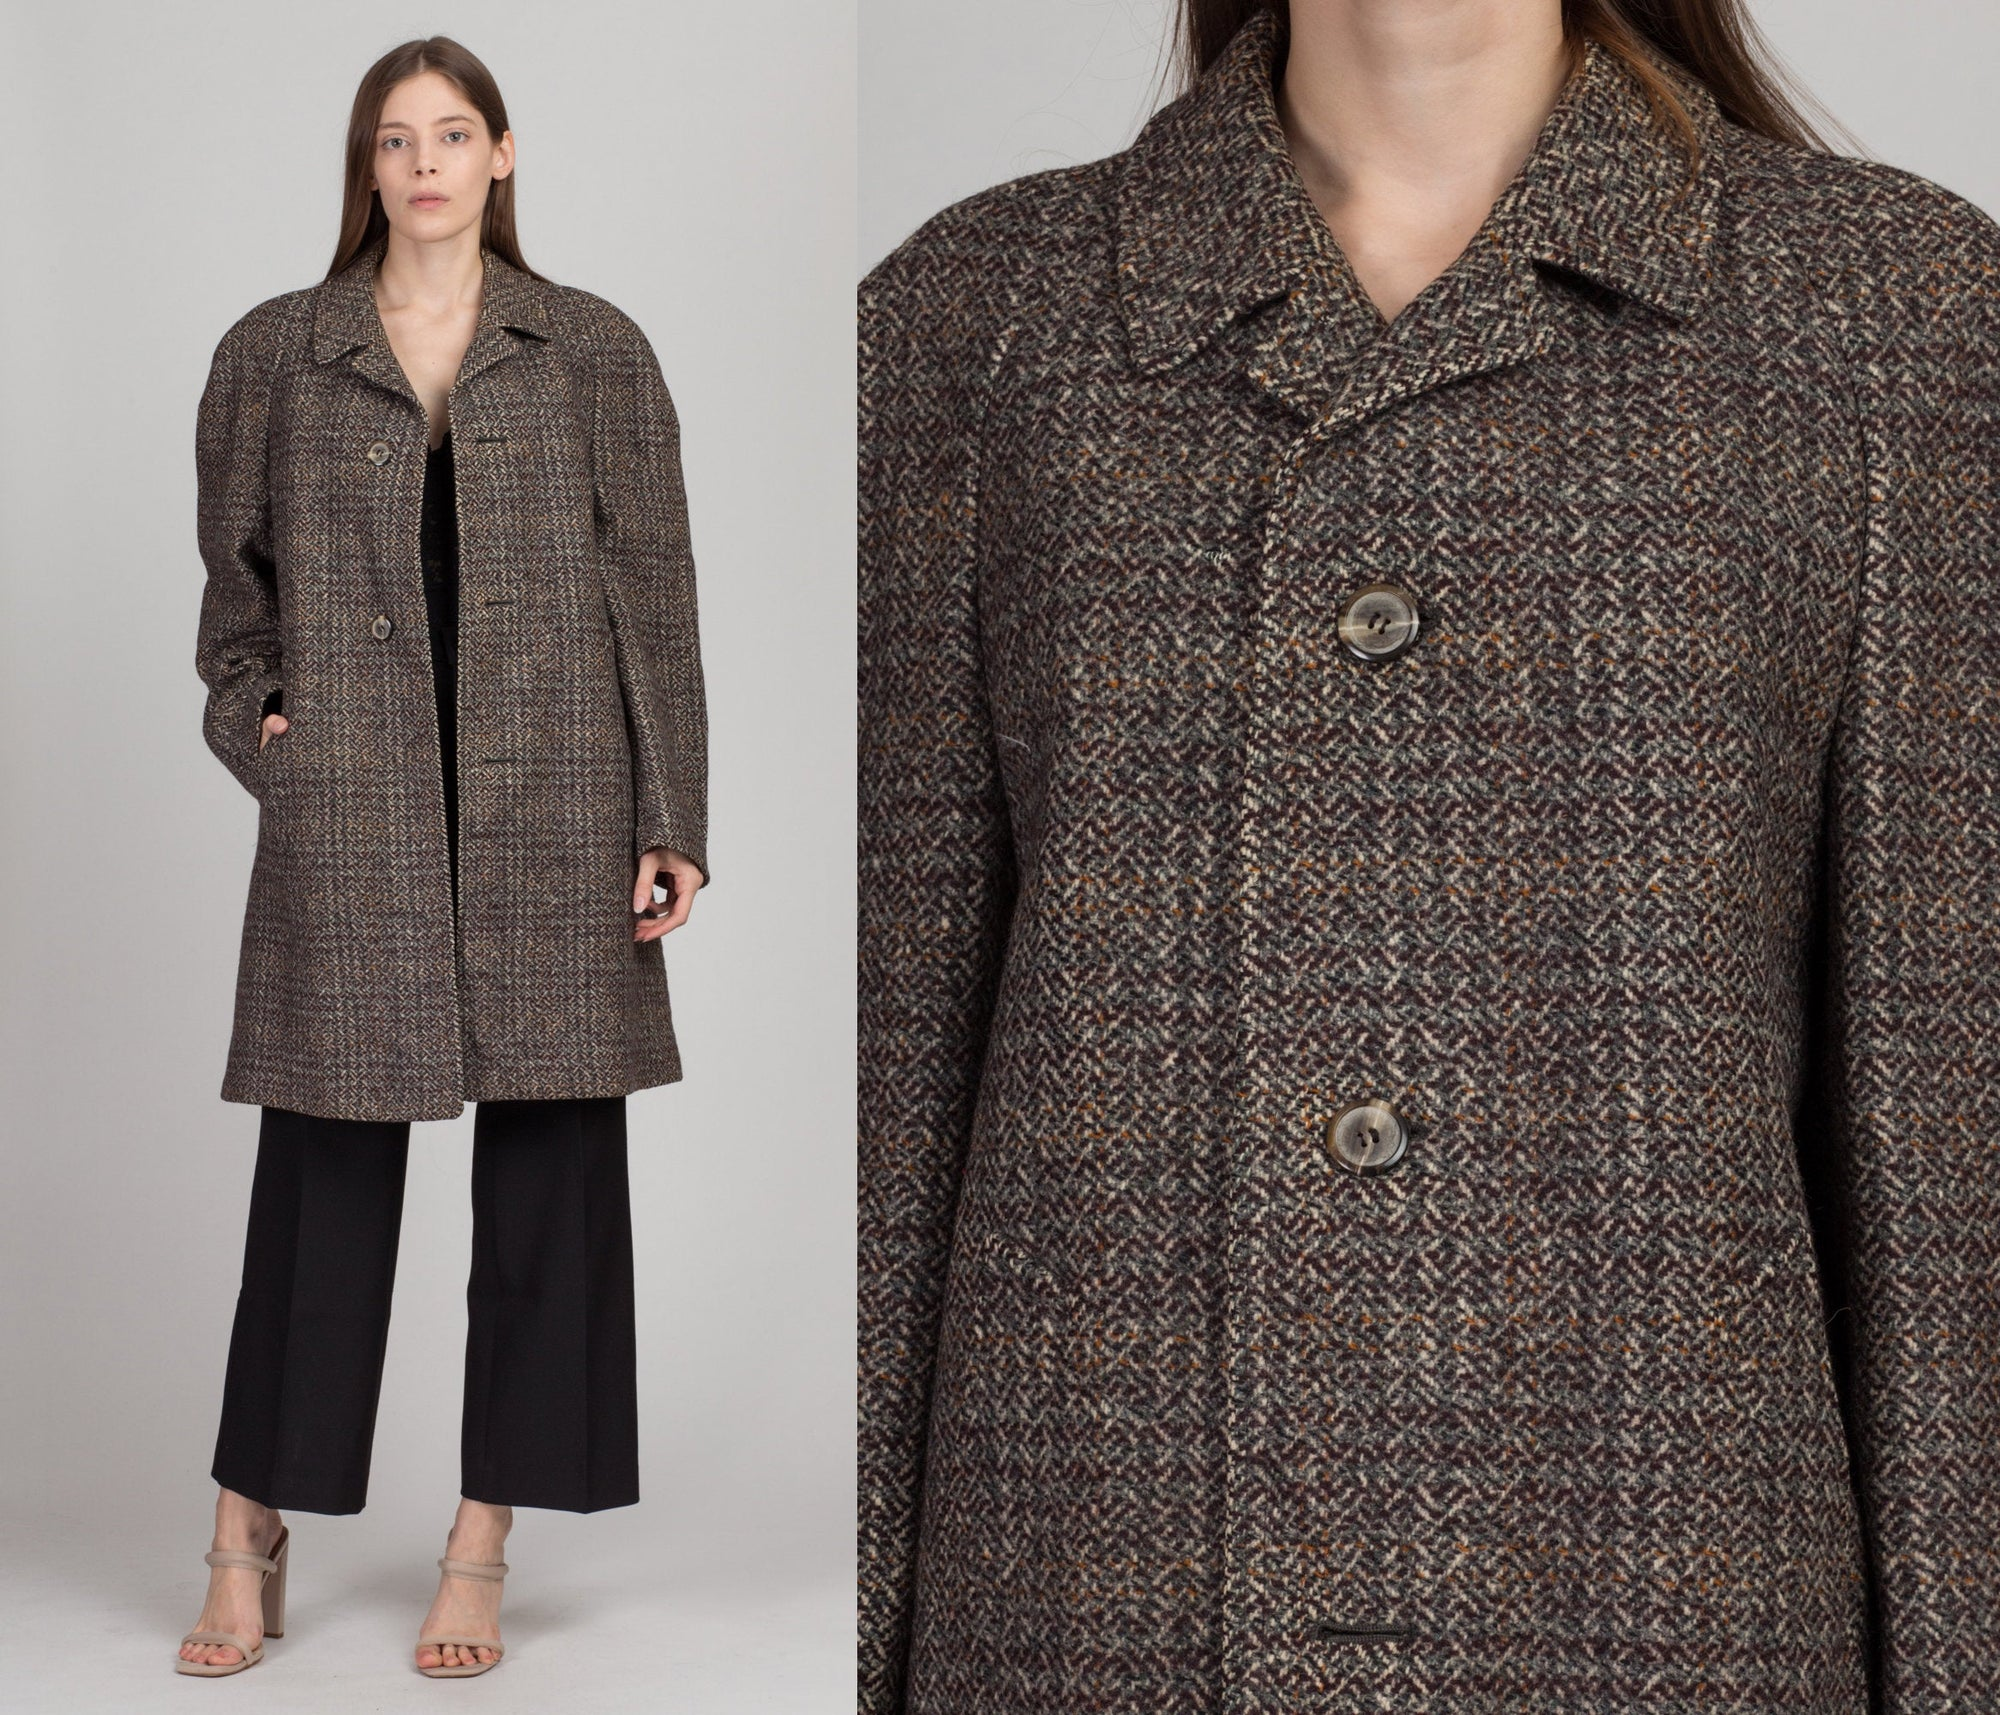 1960s Kynoch Keith Scotland Wool Tweed Overcoat - Men's Medium, Women's Large | Vintage 60s Button Up Long Winter Jacket